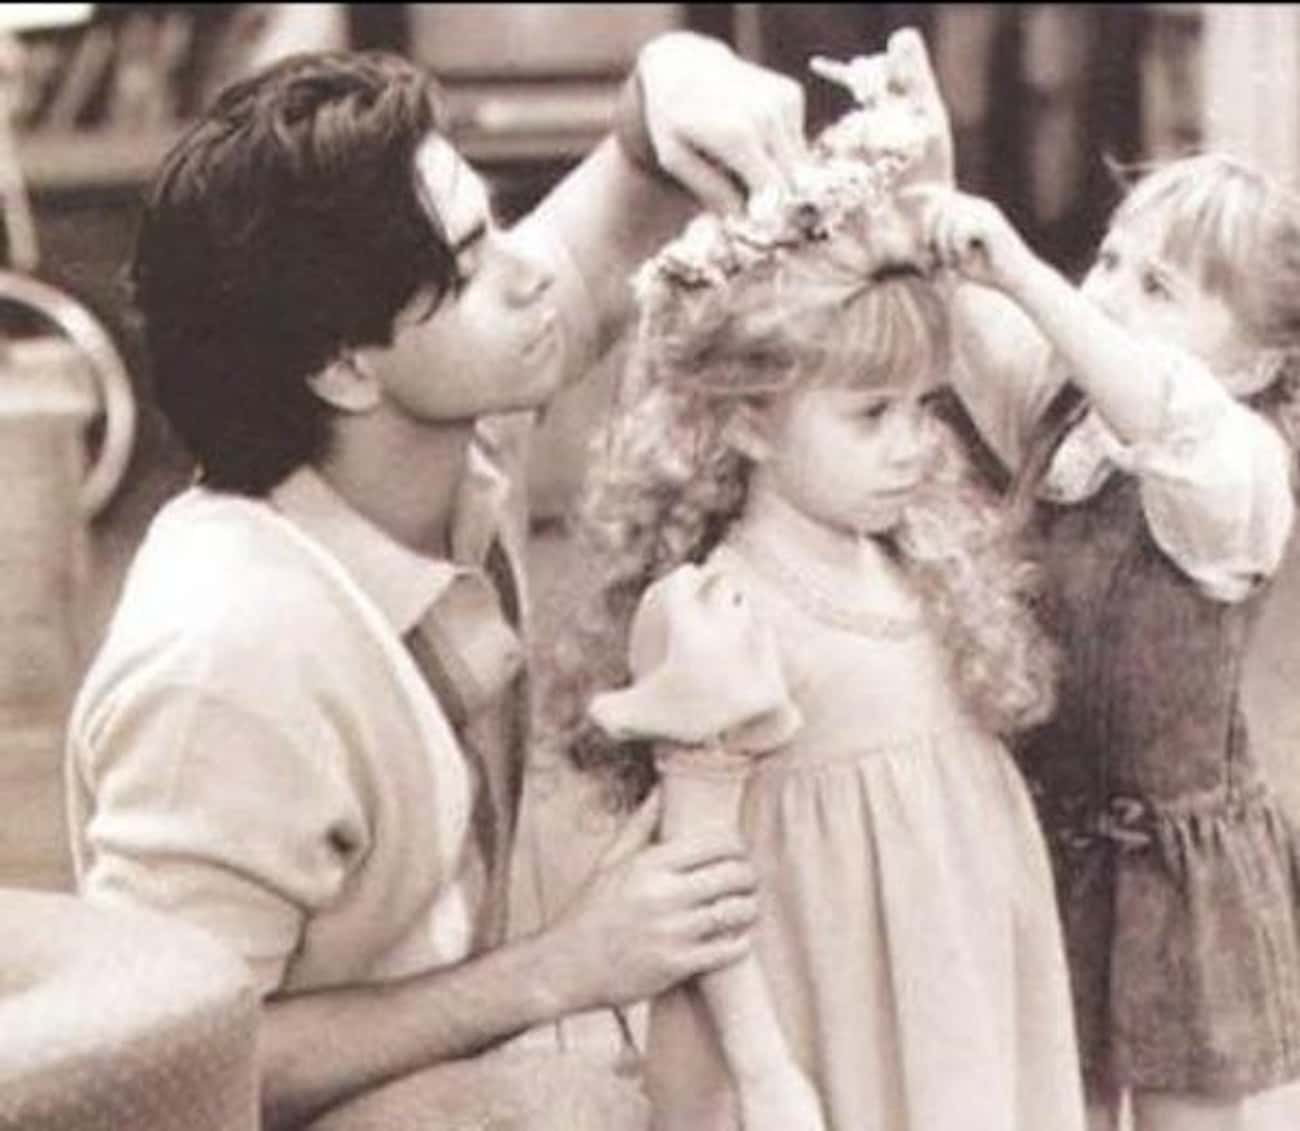 Helping Michelle Tanner Get Re is listed (or ranked) 1 on the list 50+ Amazing Behind the Scenes Photos from Iconic TV Shows